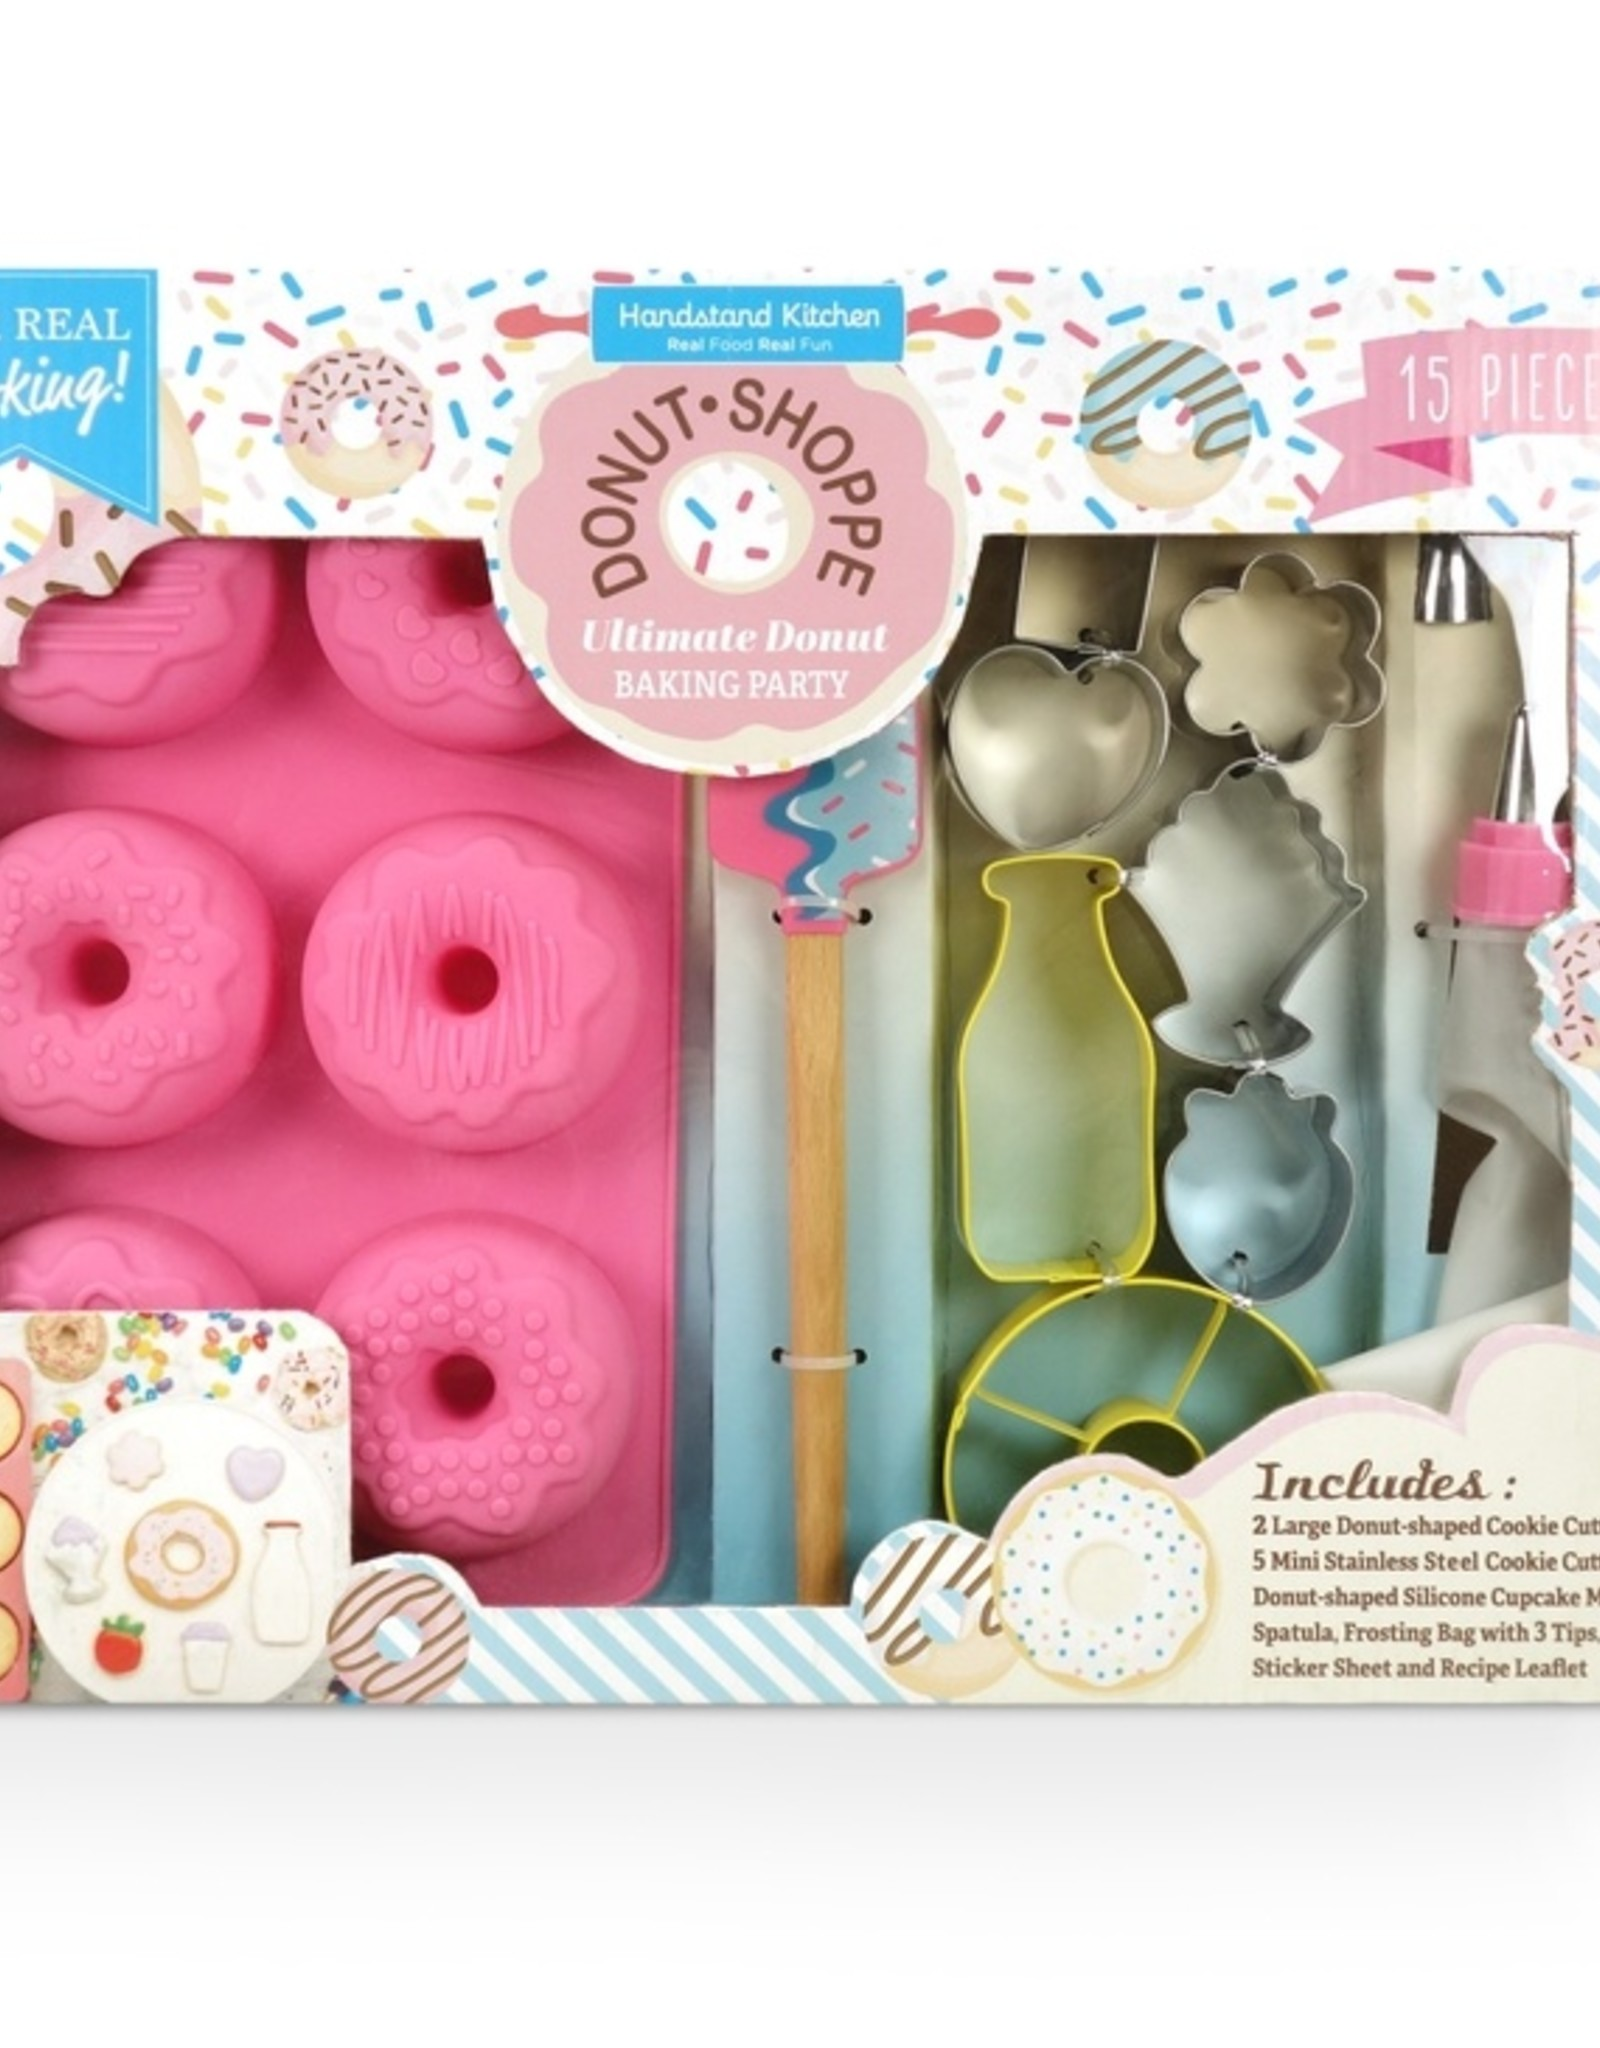 Handstand Kitchen Donut Shoppe Ultimate Baking Party Set